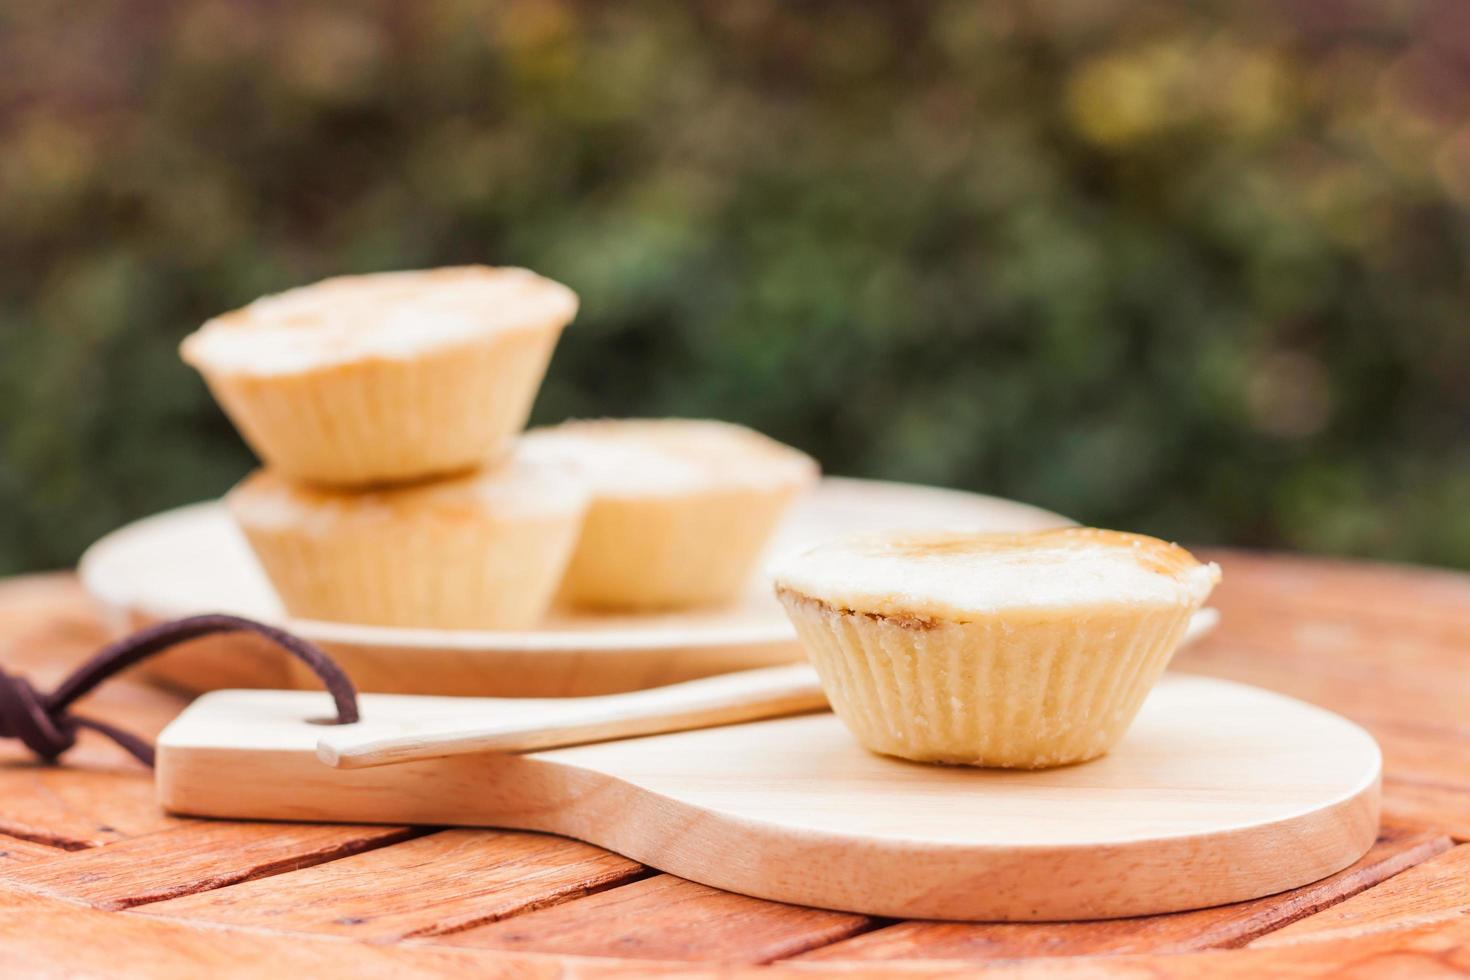 Mini pies on a table outside photo